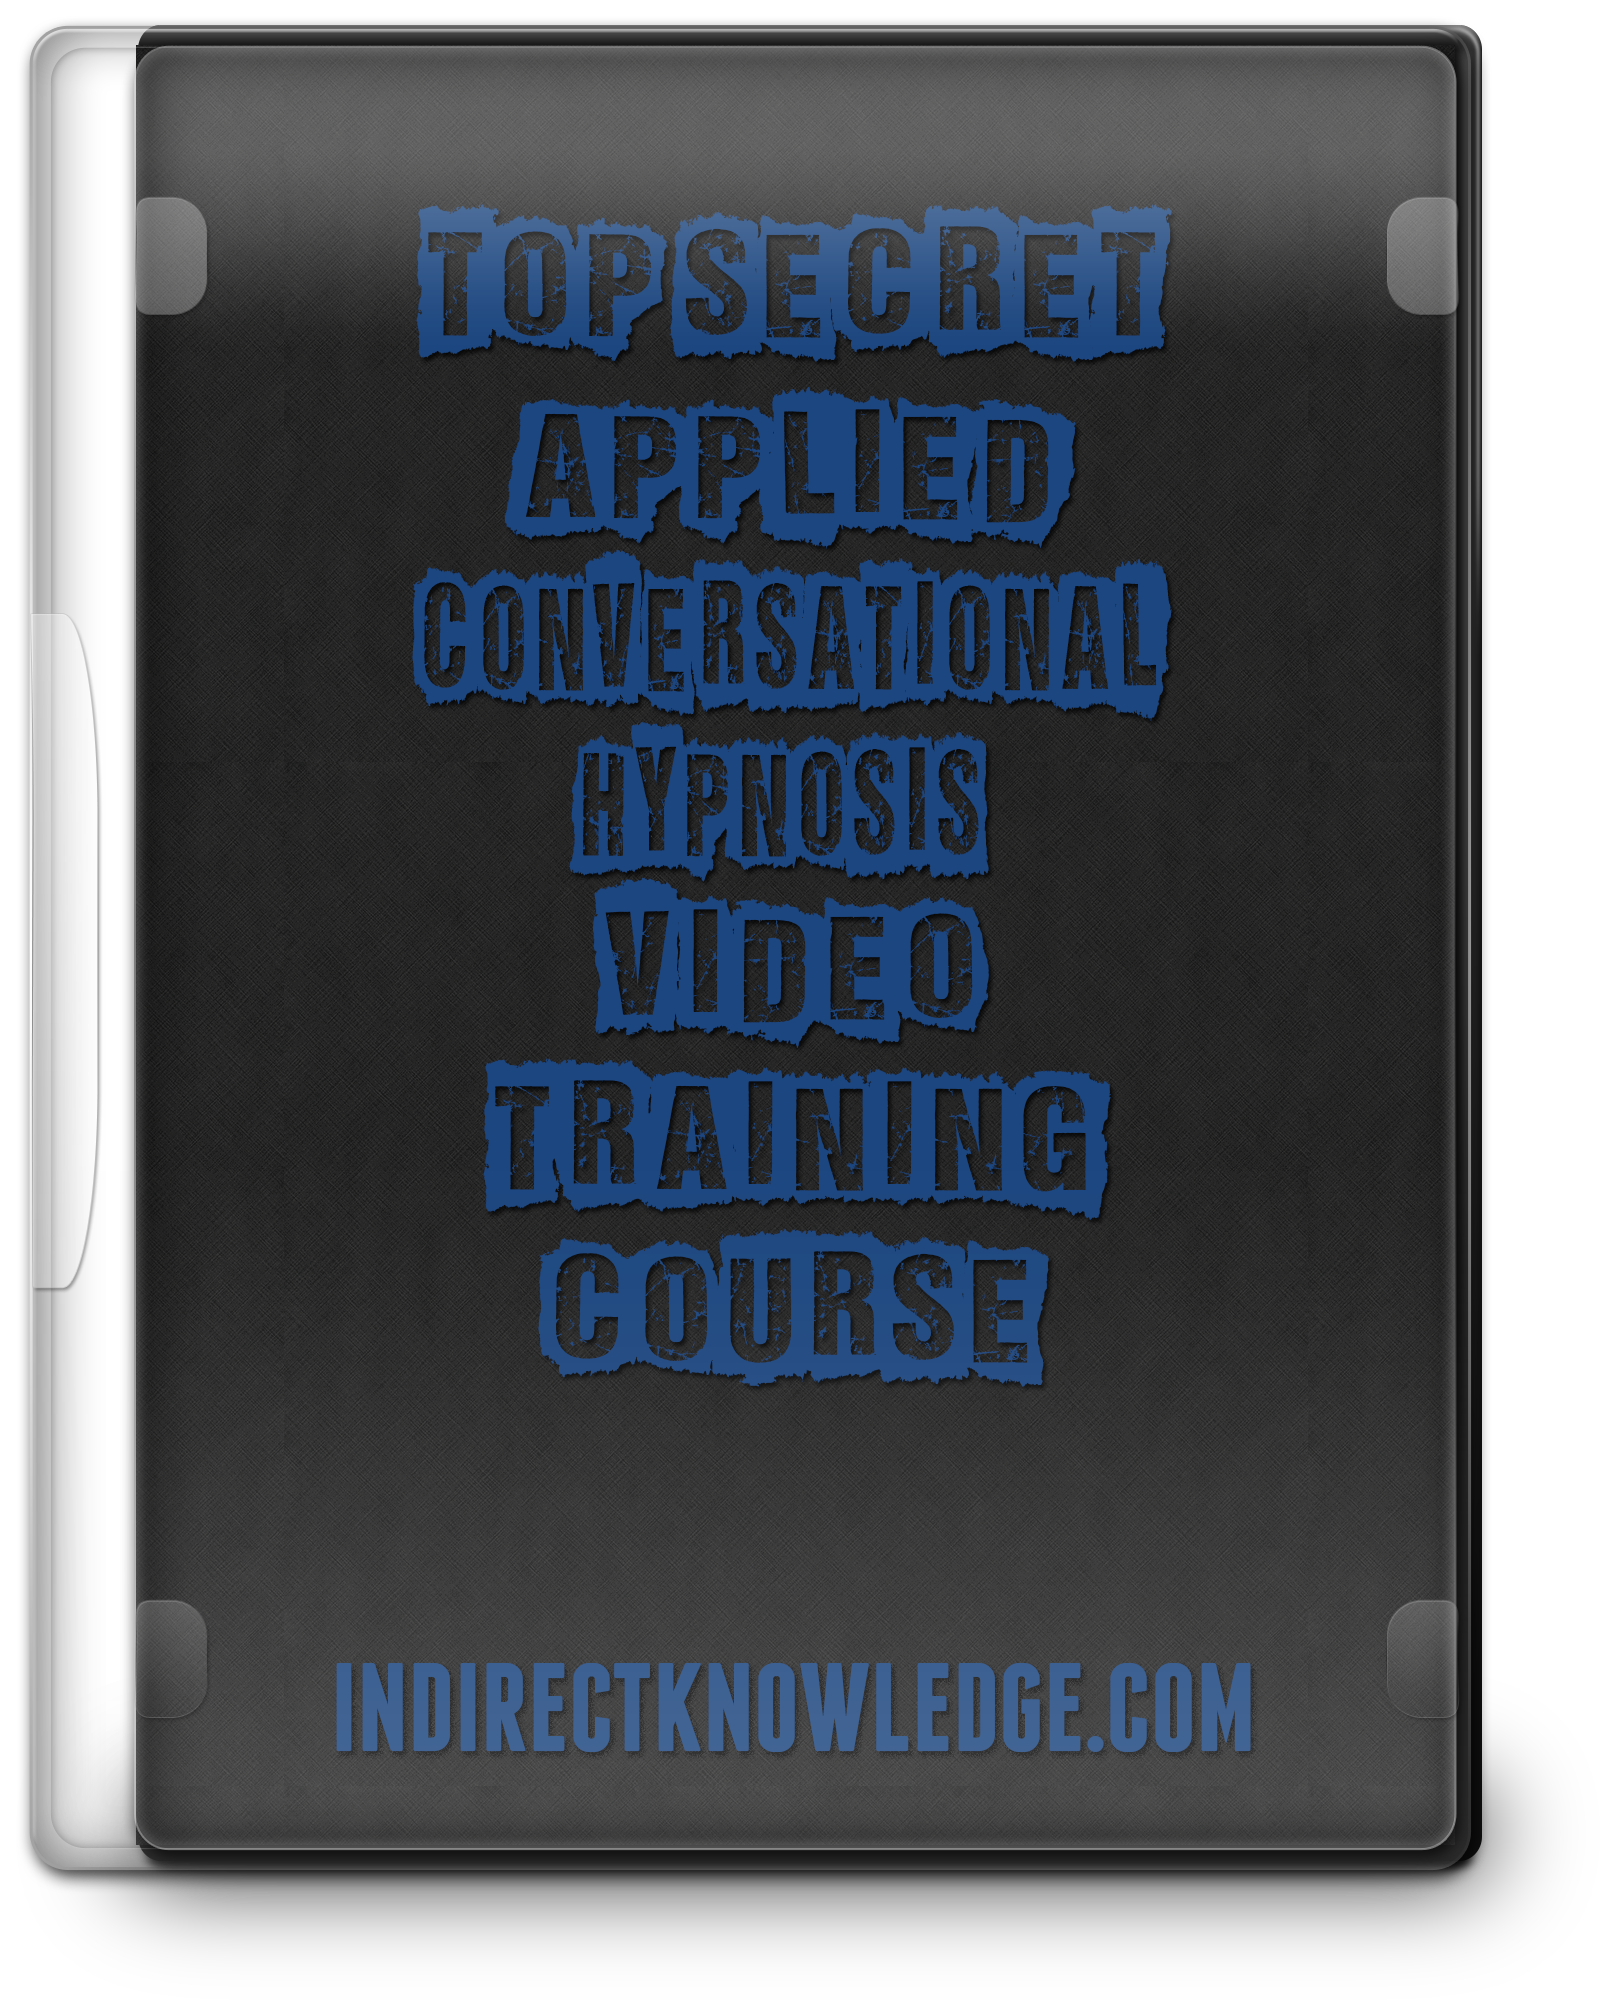 Top Secret Applied Conversational Hypnosis Course